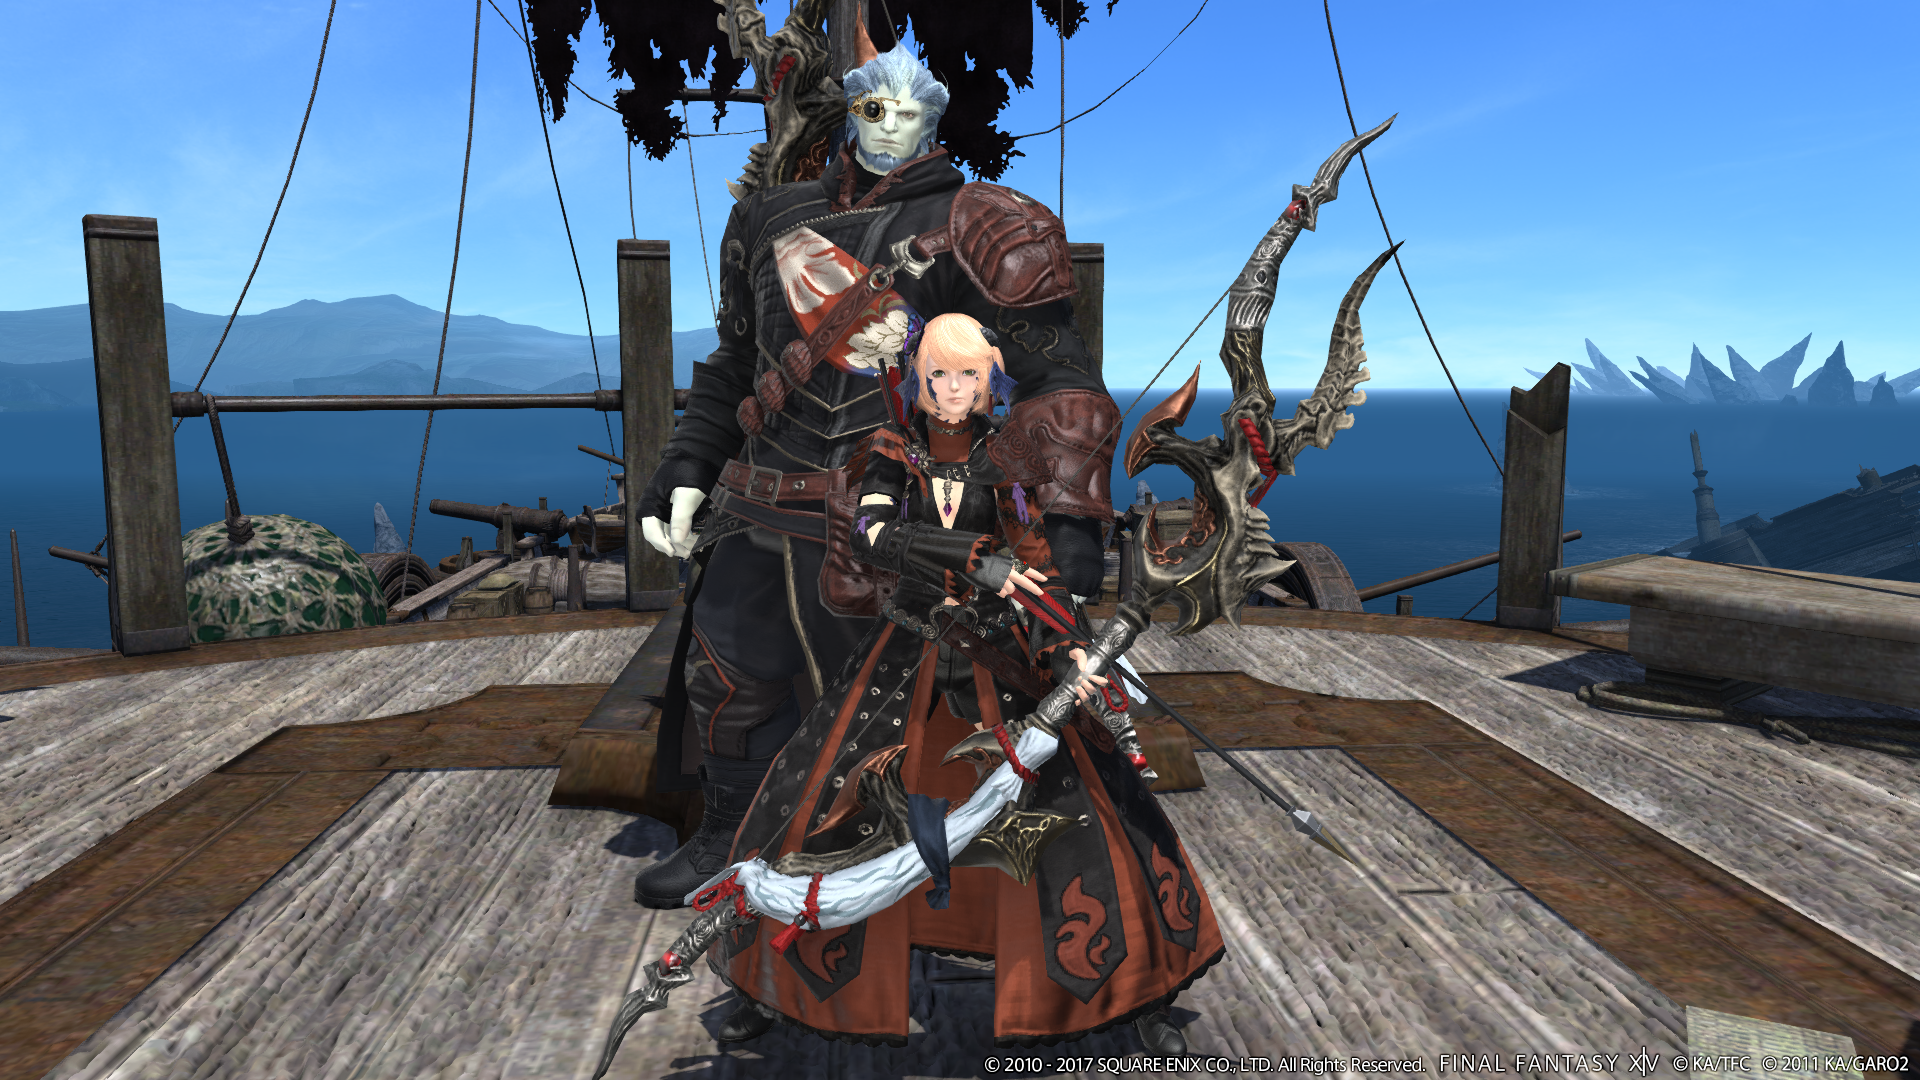 Final Fantasy XIV details Dun Scaith, new PvP gear, mounts and more